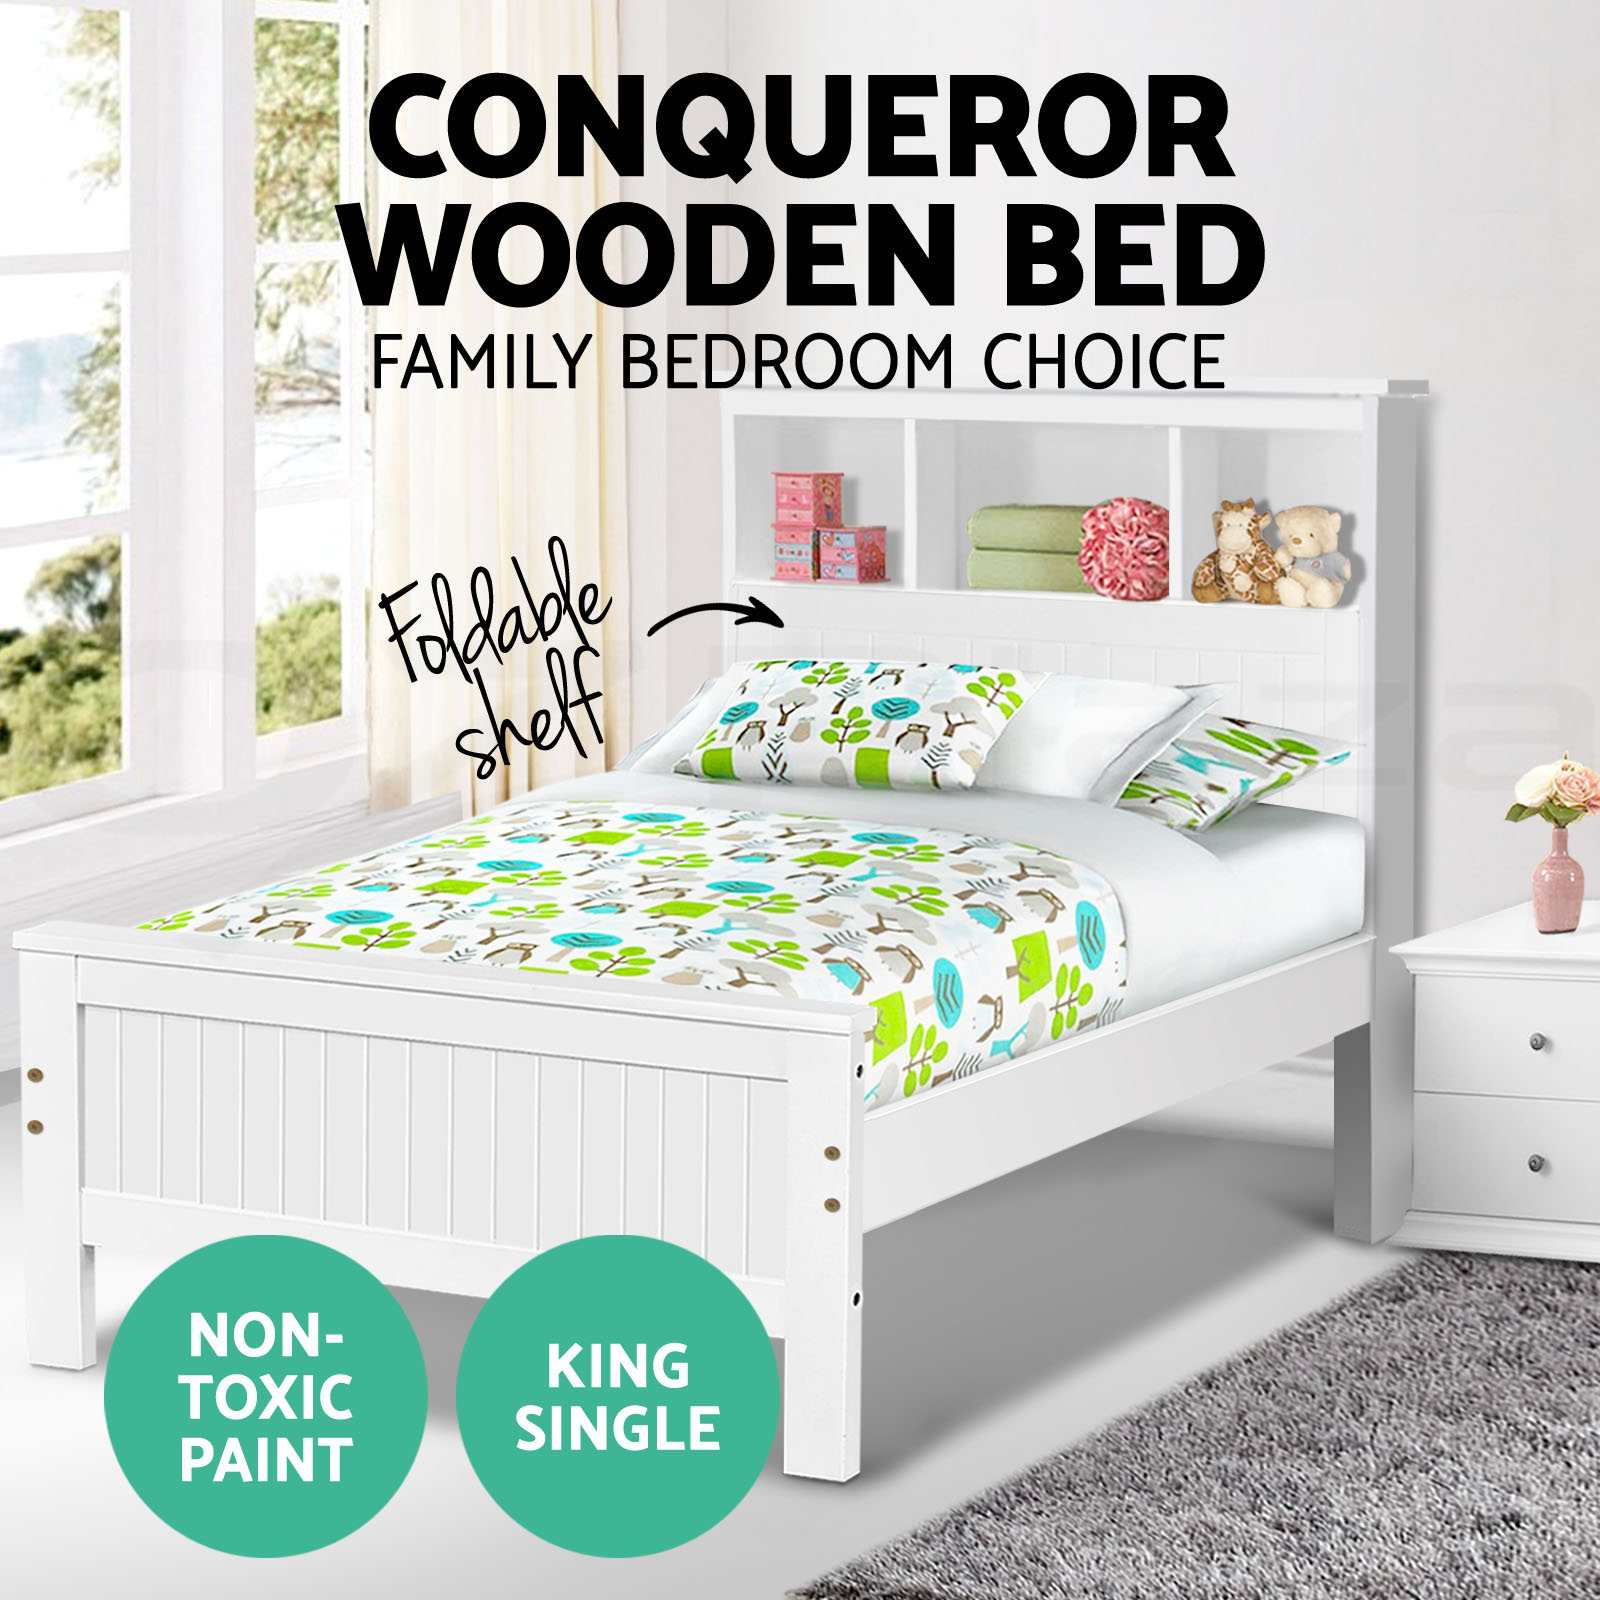 Non Toxic Bedroom Furniture Wooden Bed Frame Conqueror King Single Shelf Bookcase Pine Wood